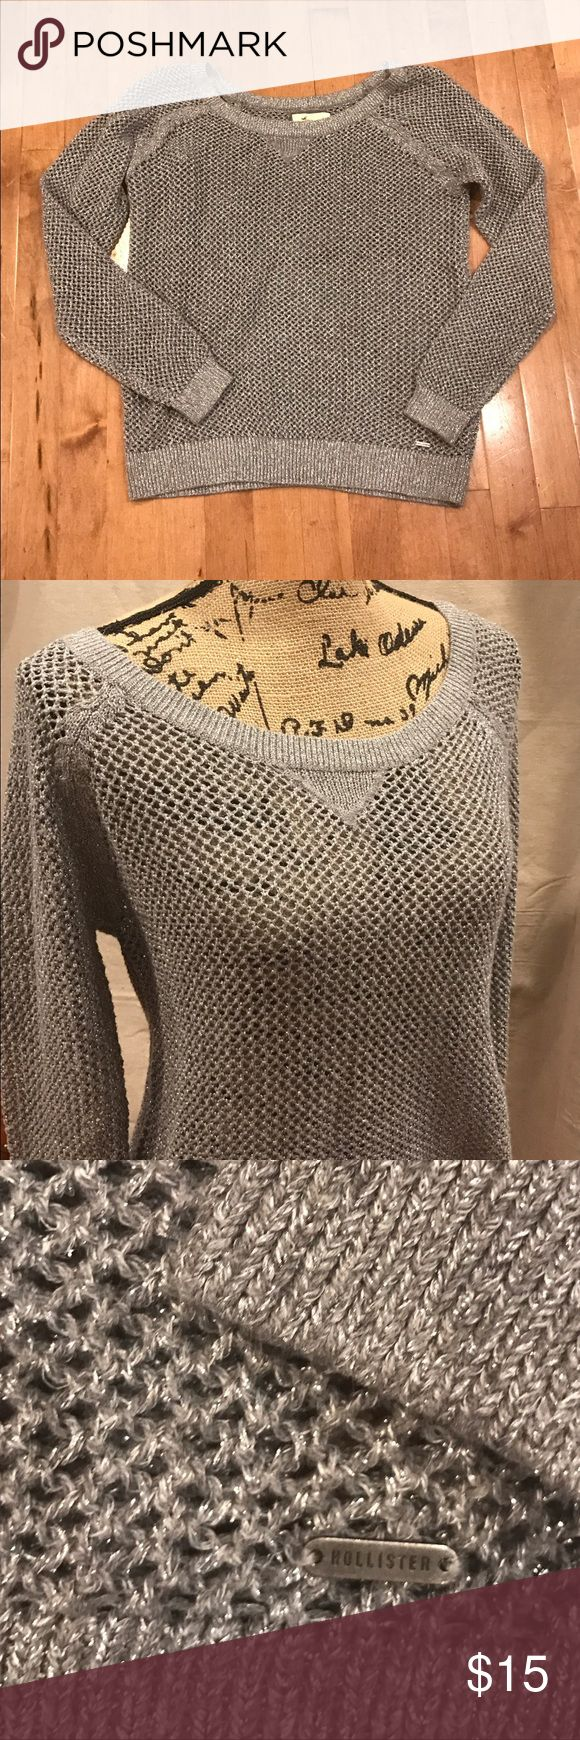 Hollister silver grey mesh sweater Sparkly mesh sweater by Hollister looks great with skirts or dressed down with jeans. Size large. Hollister Sweaters Crew & Scoop Necks